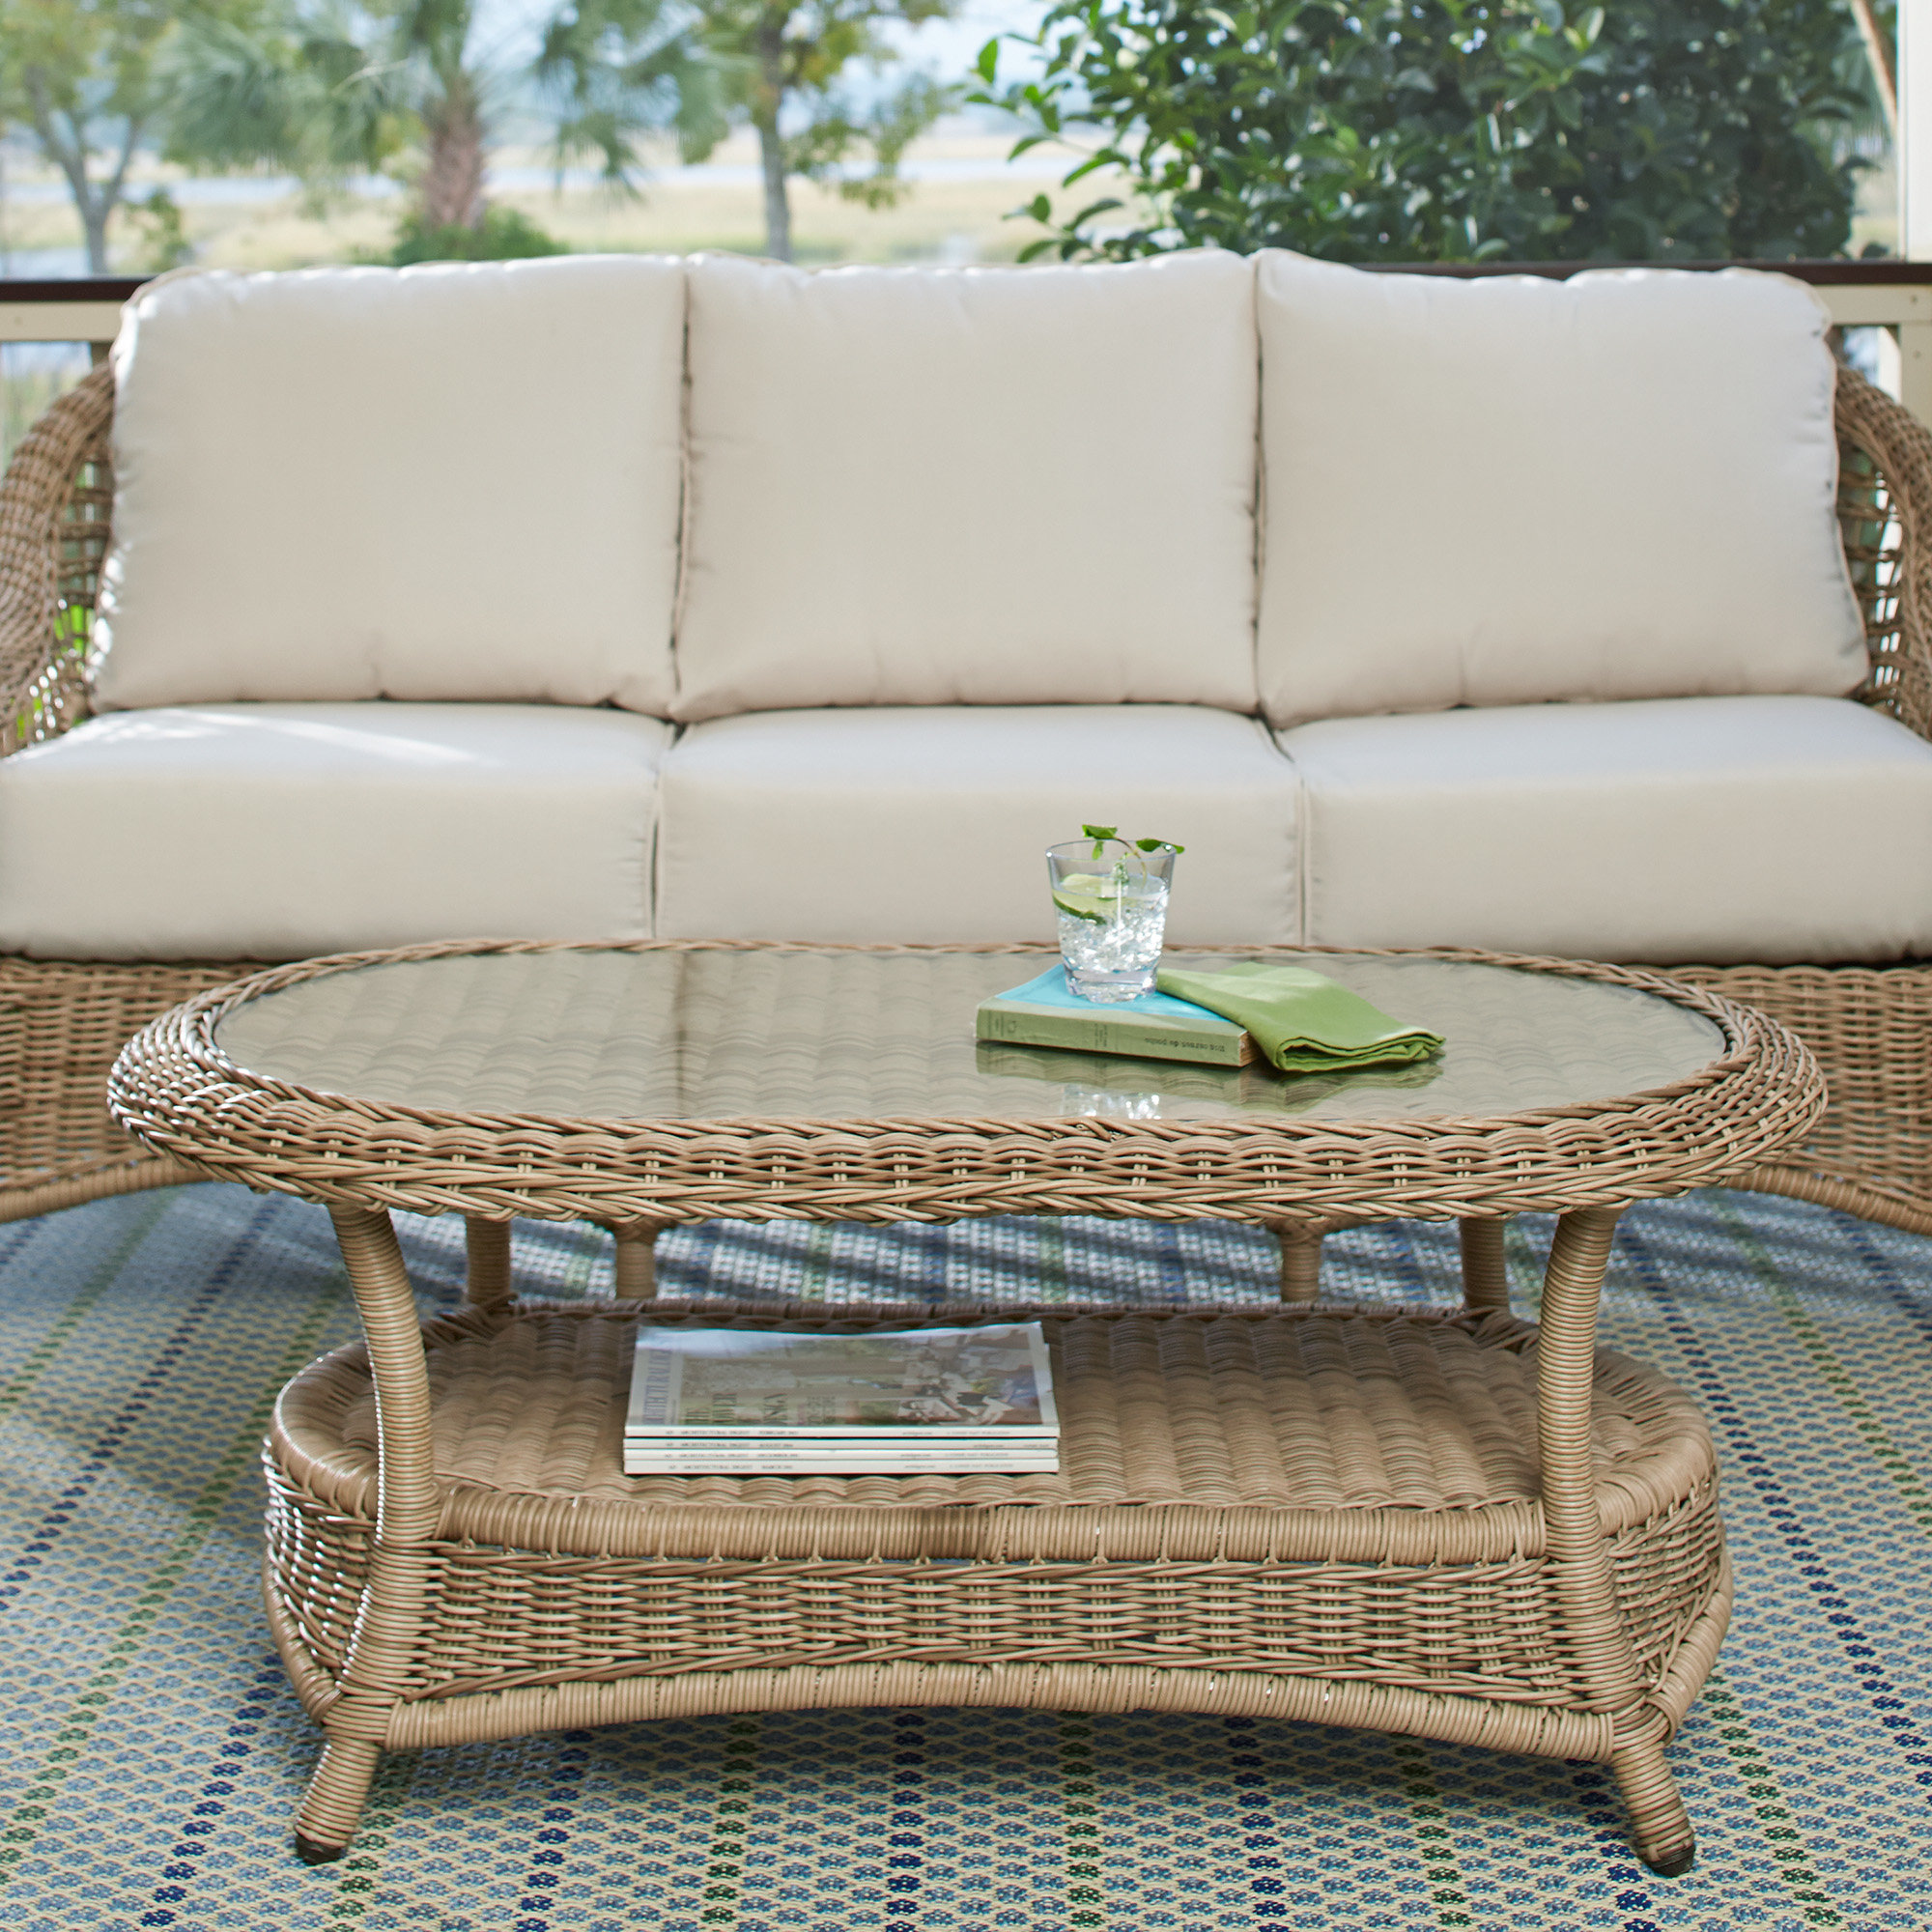 highland dunes riesel wicker coffee table reviews bombay outdoors pineapple umbrella accent patio corner display cabinet wood pedestal end ikea outdoor shelf chairs dining set